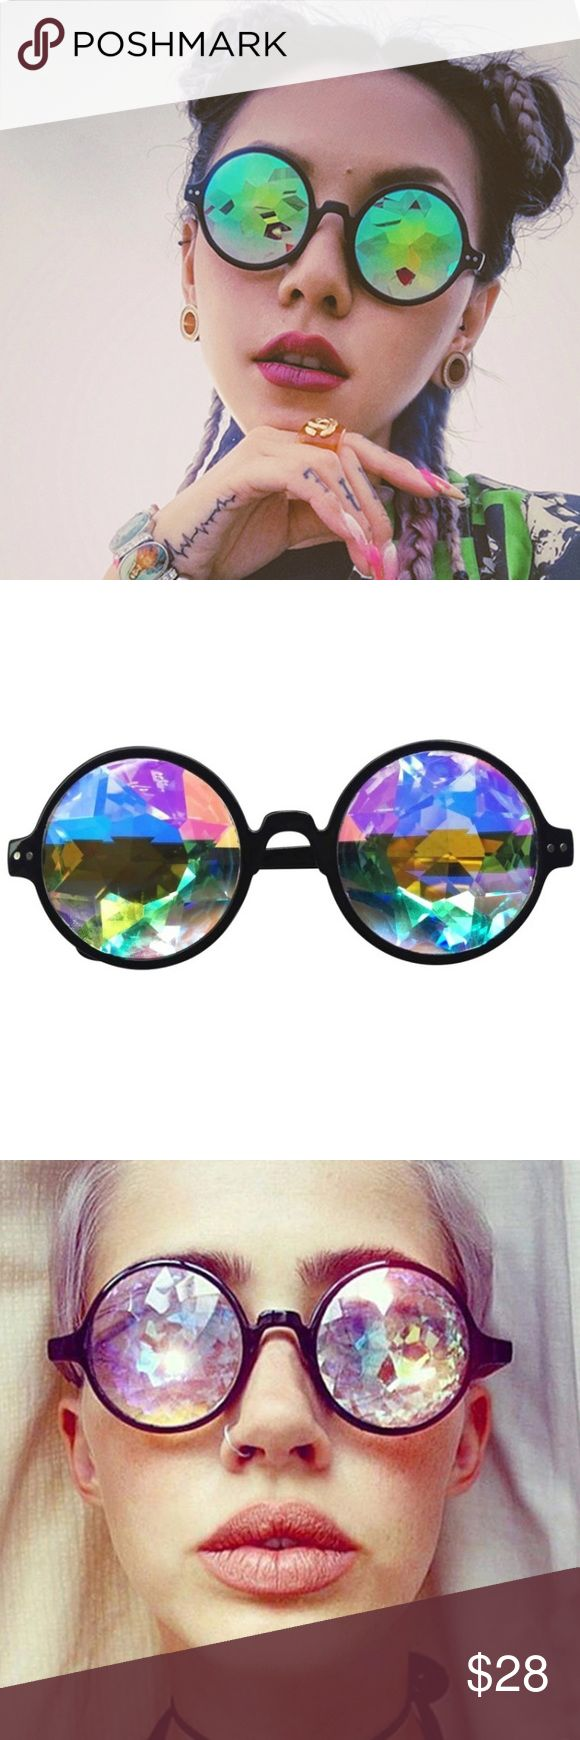 Black Holographic Kaleidoscope Festival Sunglasses Hologram glasses are the ultimate accessory for festival season. Bring these to concerts, Burning Man, Coachella, etc. Unif for exposure 👽 NEW ~Limited quantity~ UNIF Accessories Sunglasses